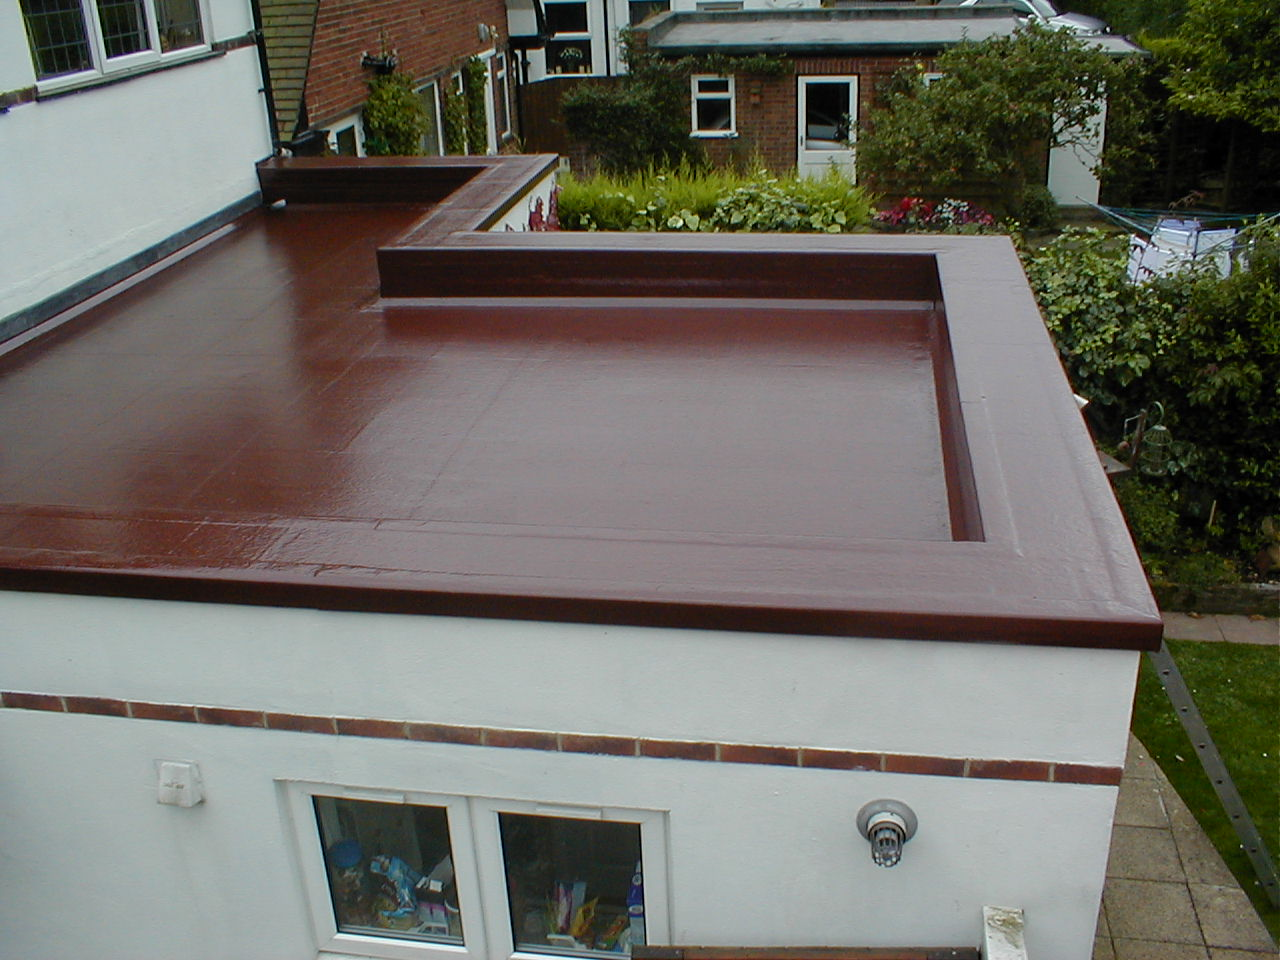 Flat roof images page 1 essex flat roofing flat roof for Cupola for garage